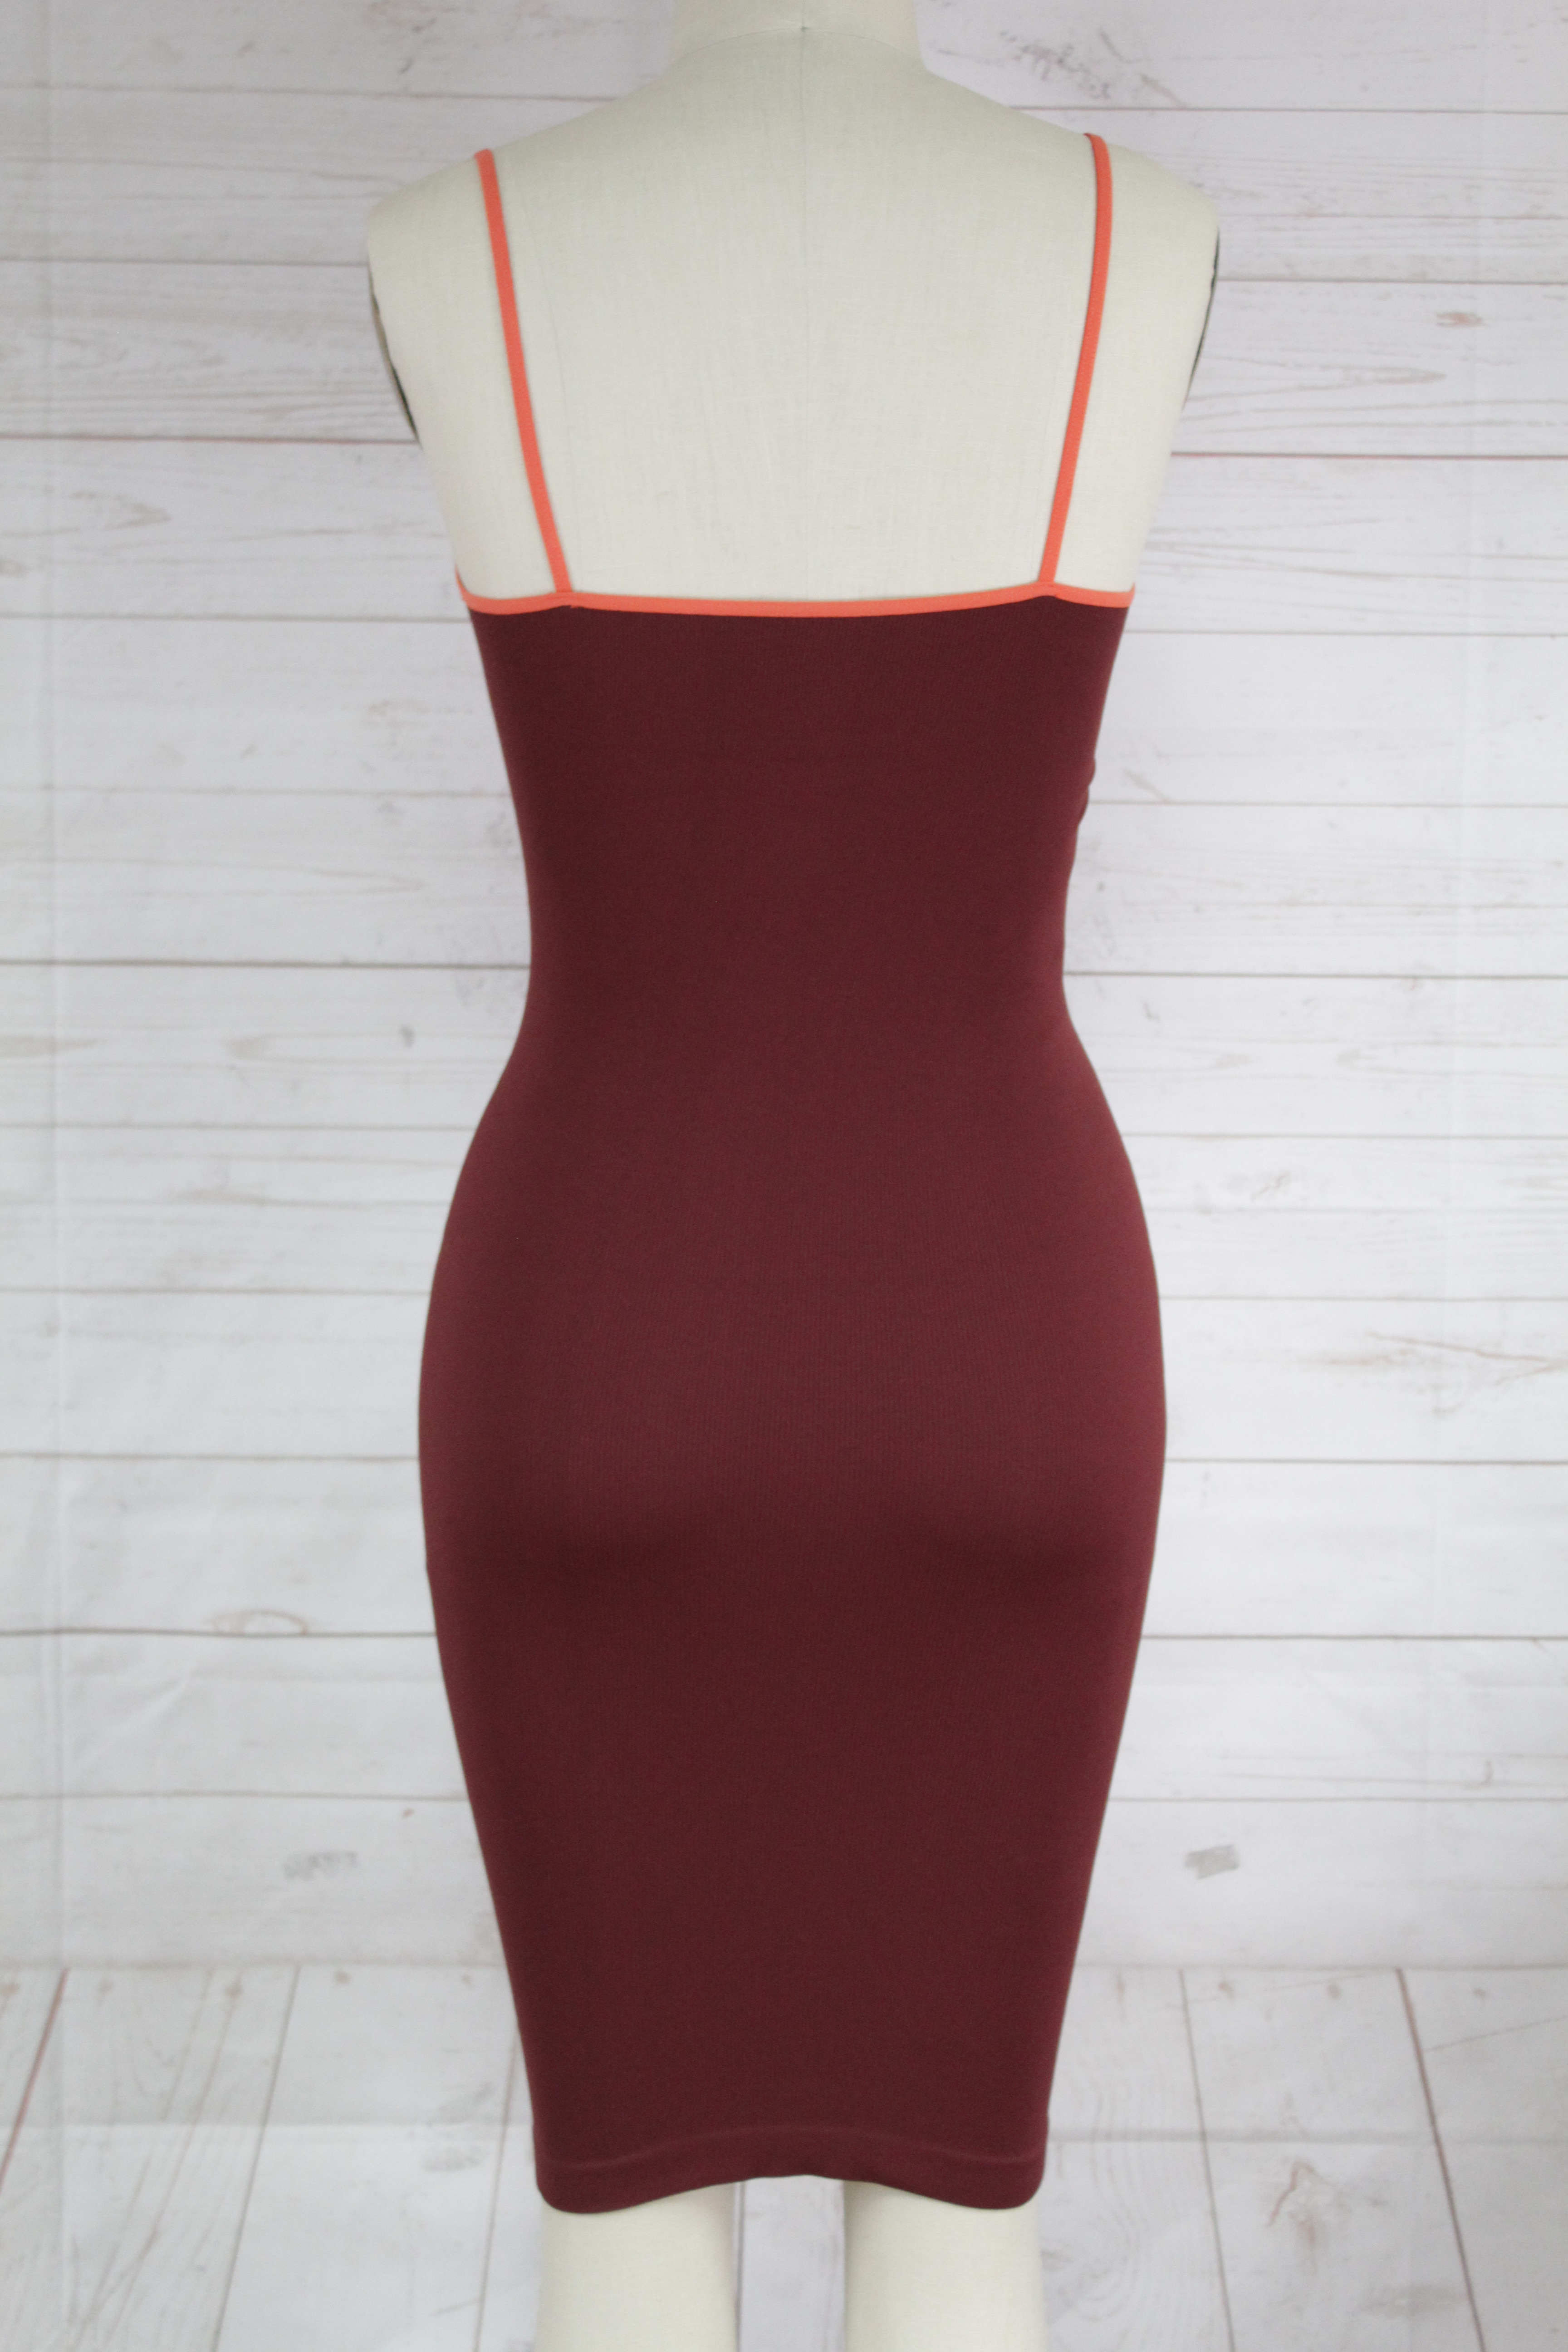 New-Free-People-Intimate-Seamless-Ribbed-Strappy-V-Neck-Bodycon-Slip-Dress-Xs-S thumbnail 4